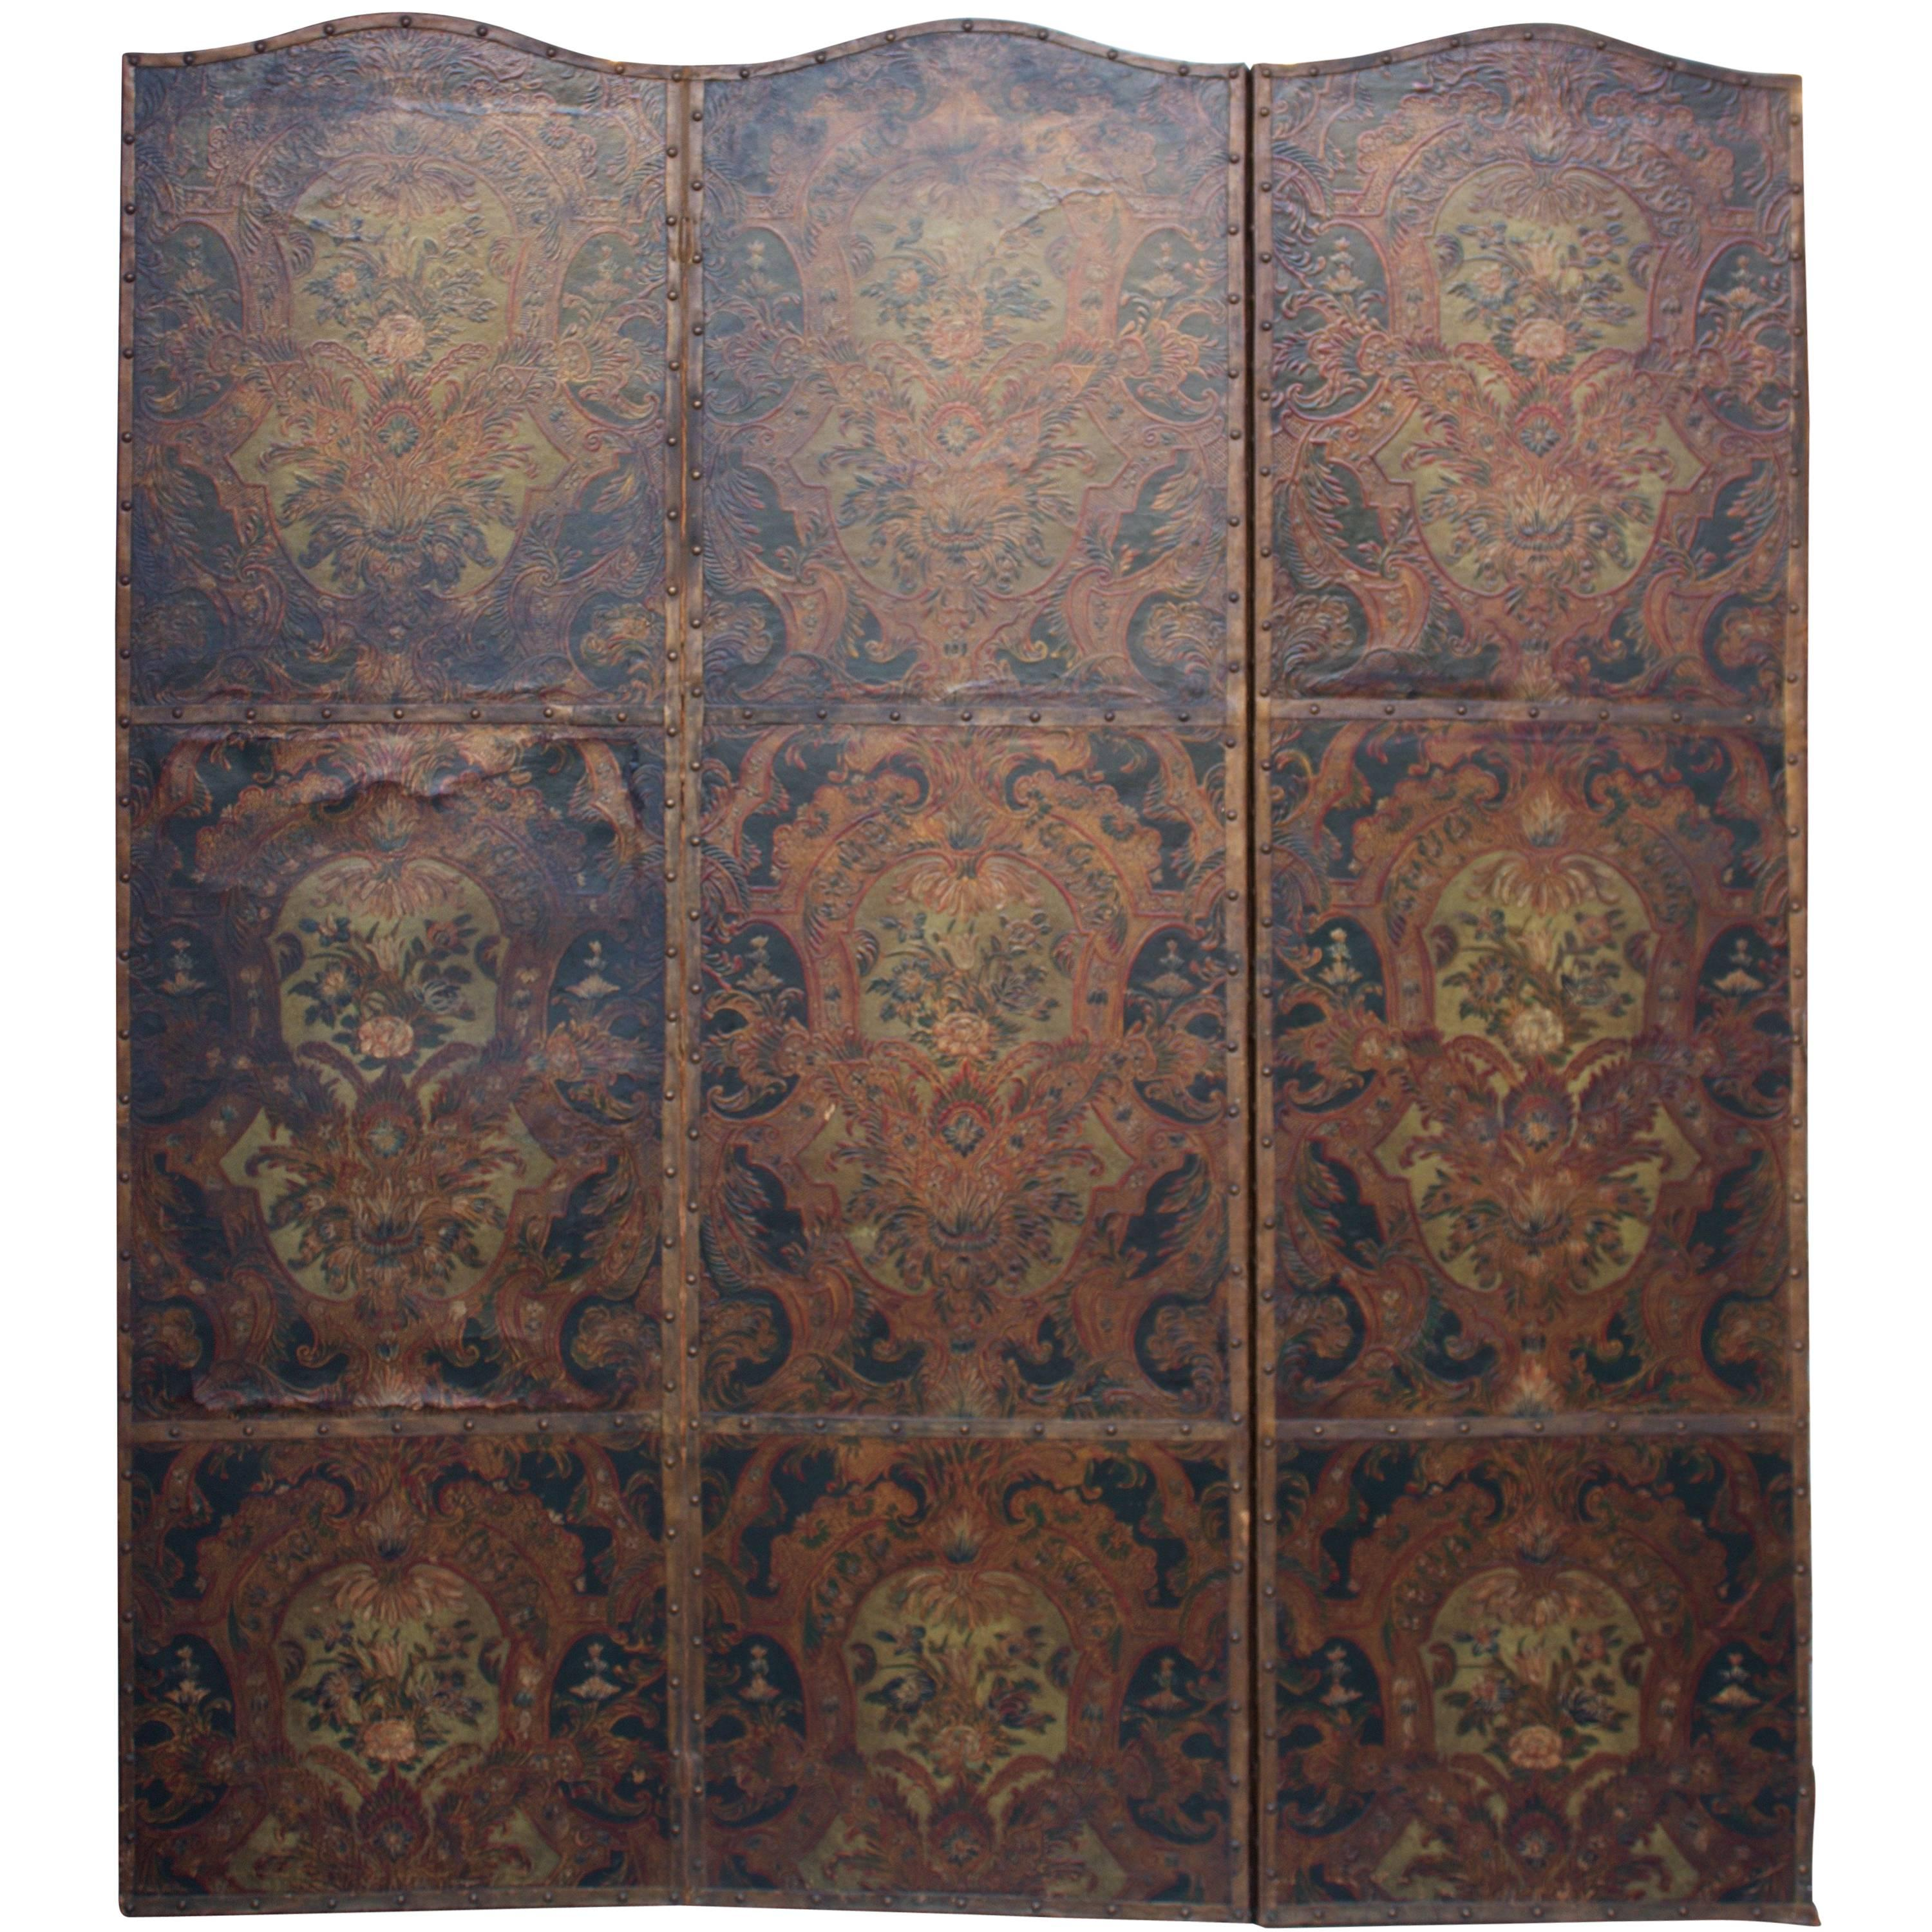 18th Century Three Panel Polychrome Cordovan Leather Screen